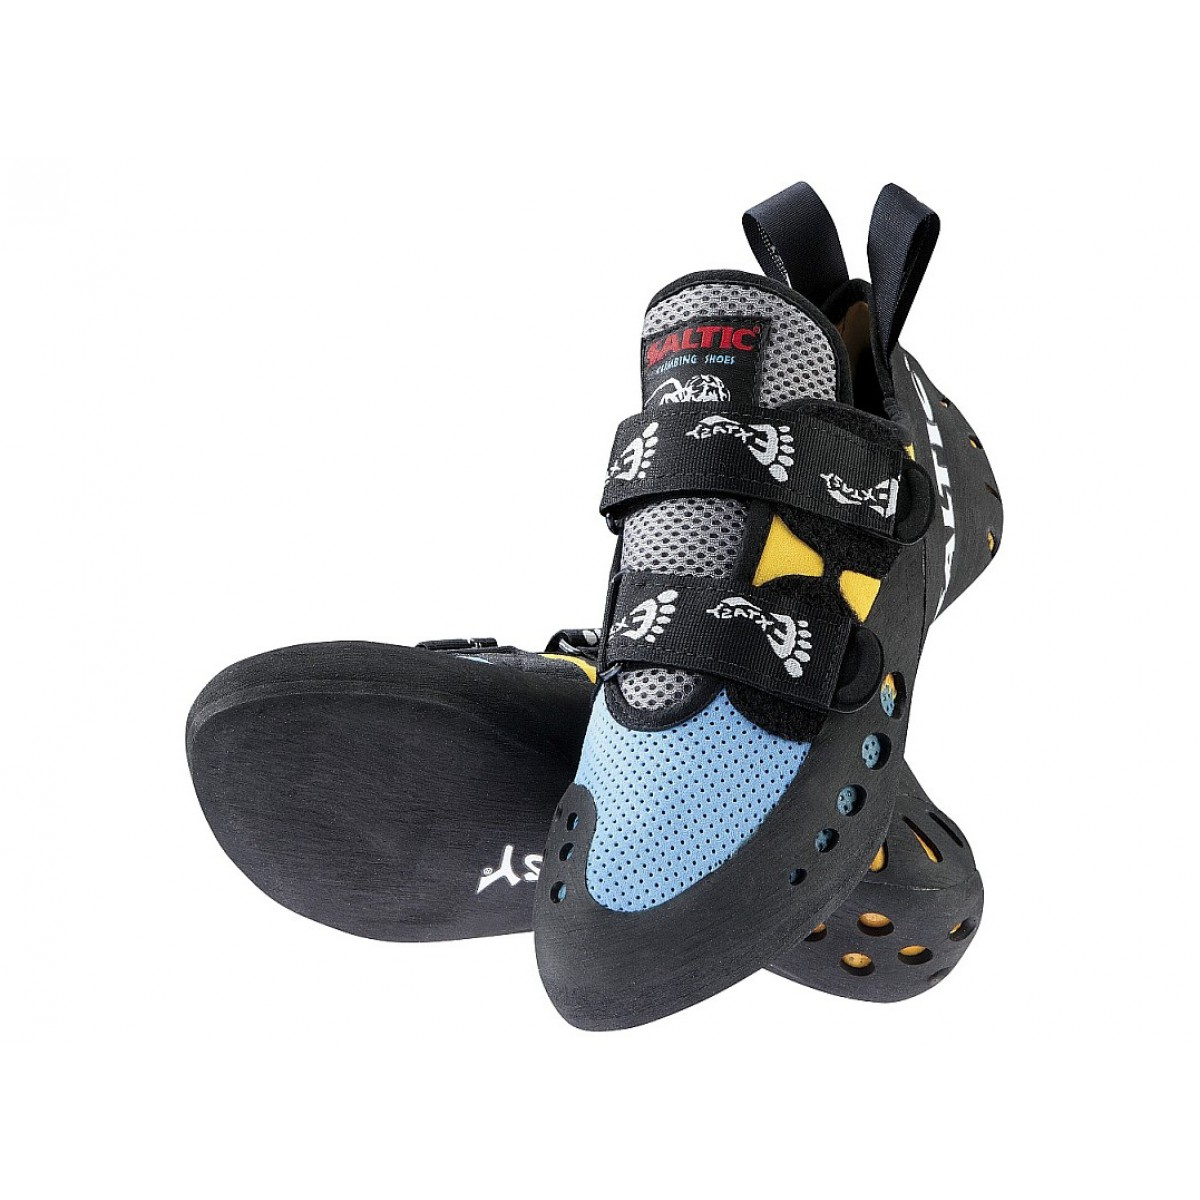 Saltic Climbing Shoes Review